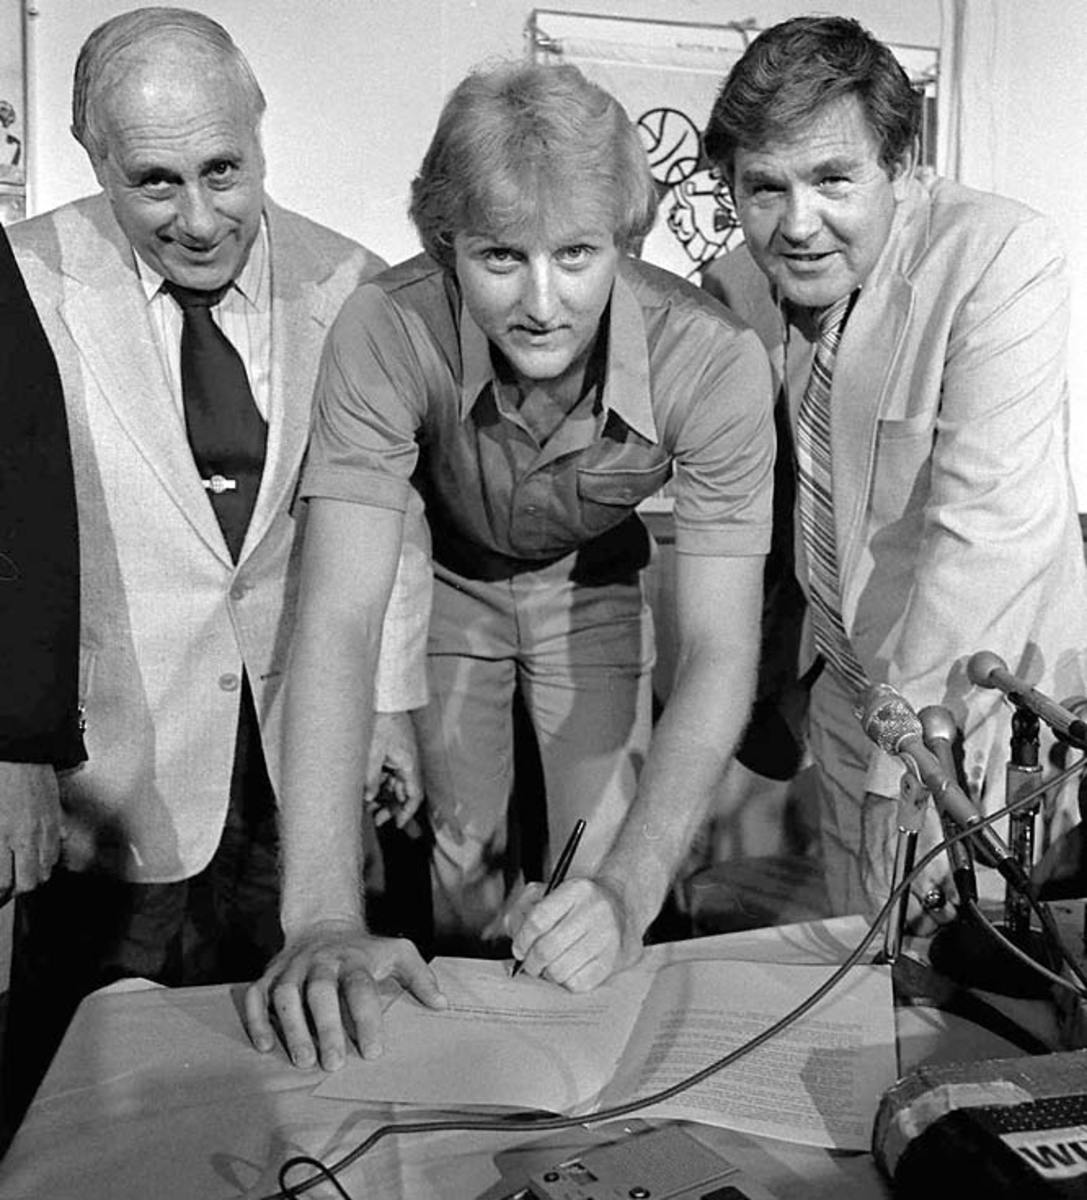 Red Auerbach, Larry Bird and Bill Fitch